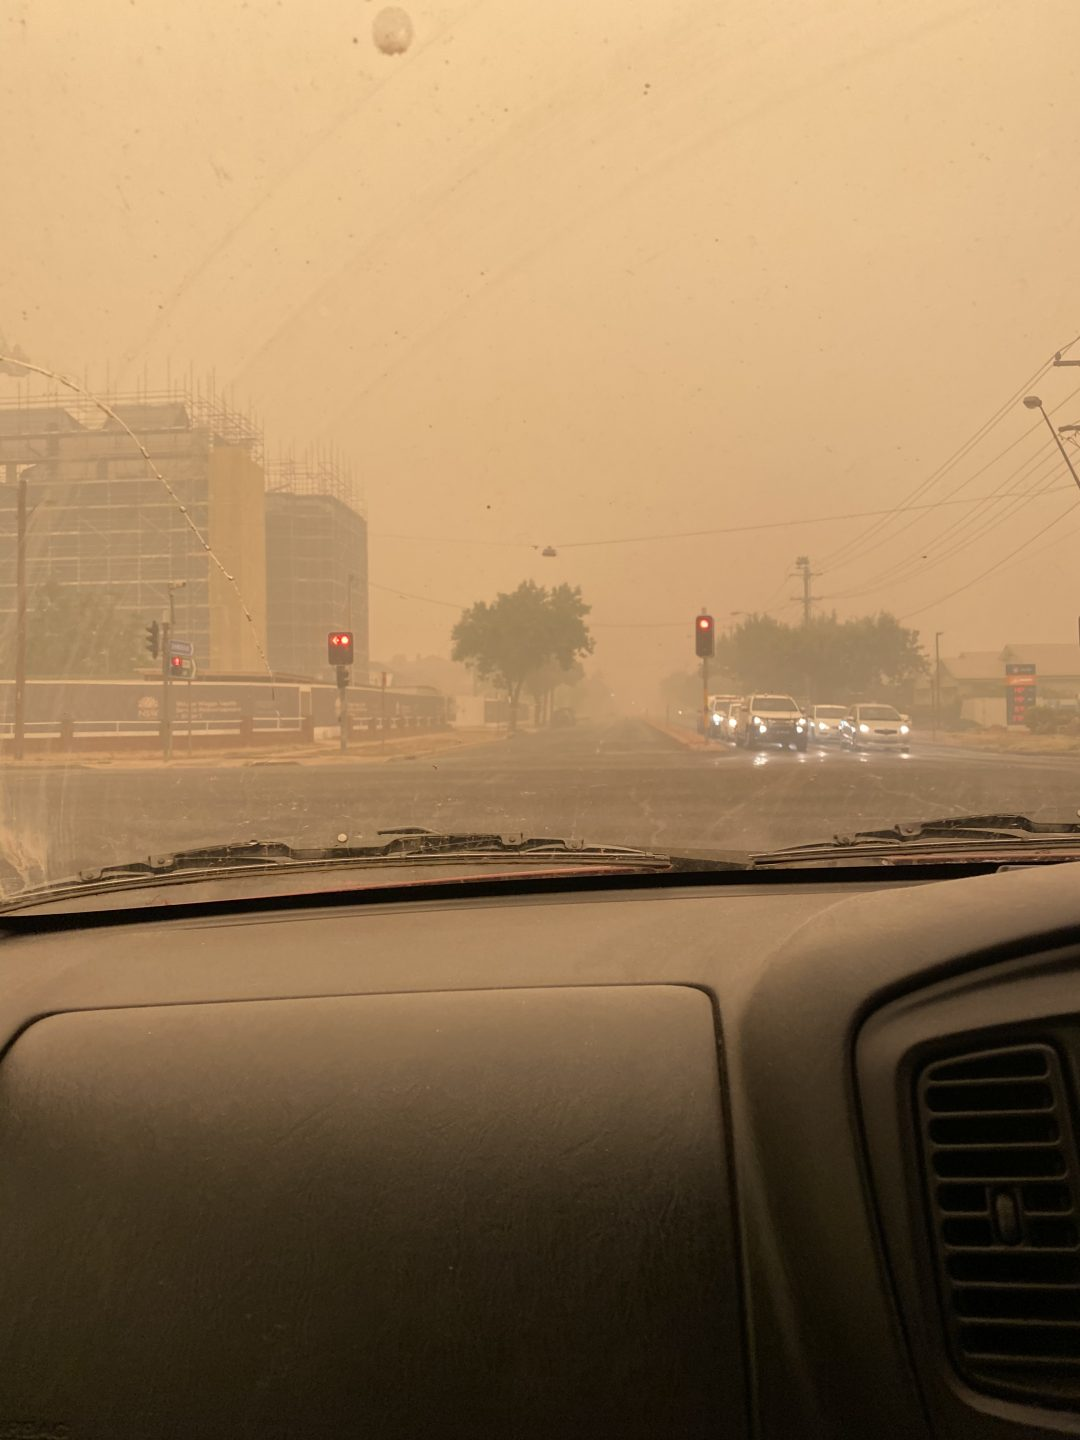 A photograph taken from inside a car looking at bushfire smoke covering the city of Wagga Wagga